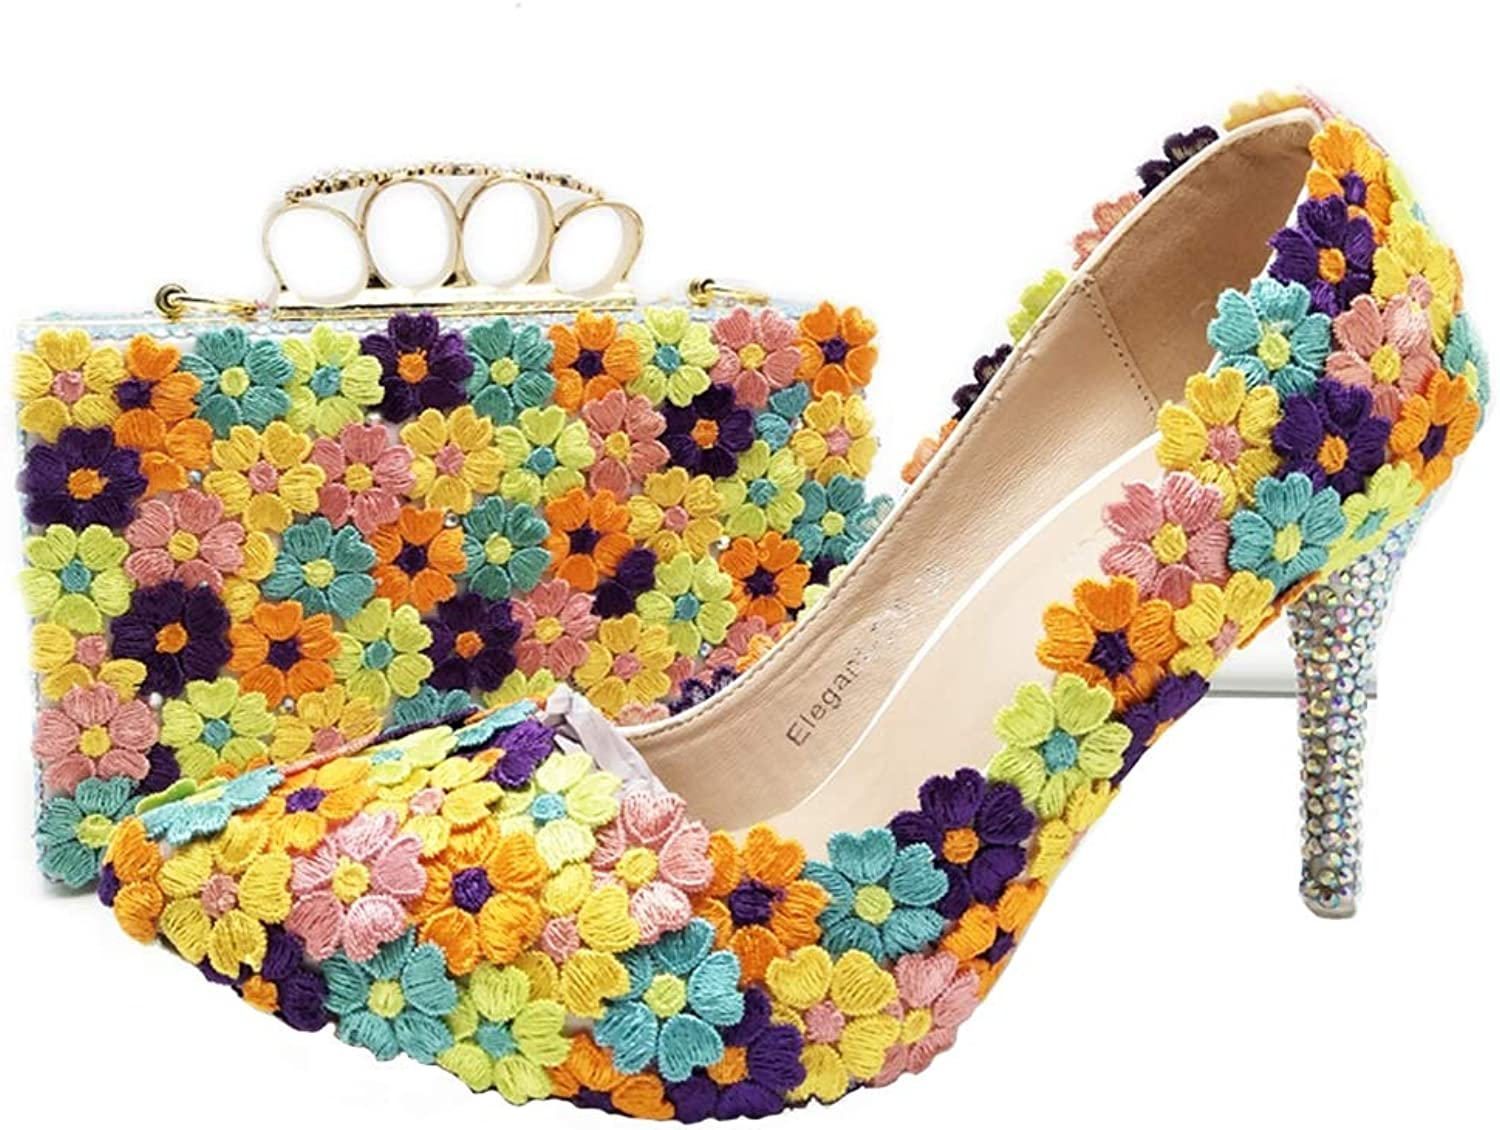 Sparrow Middle Heel Bride Wedding shoes with Purse Multicolor Lace Flower Women Party Prom Pumps with Handbag